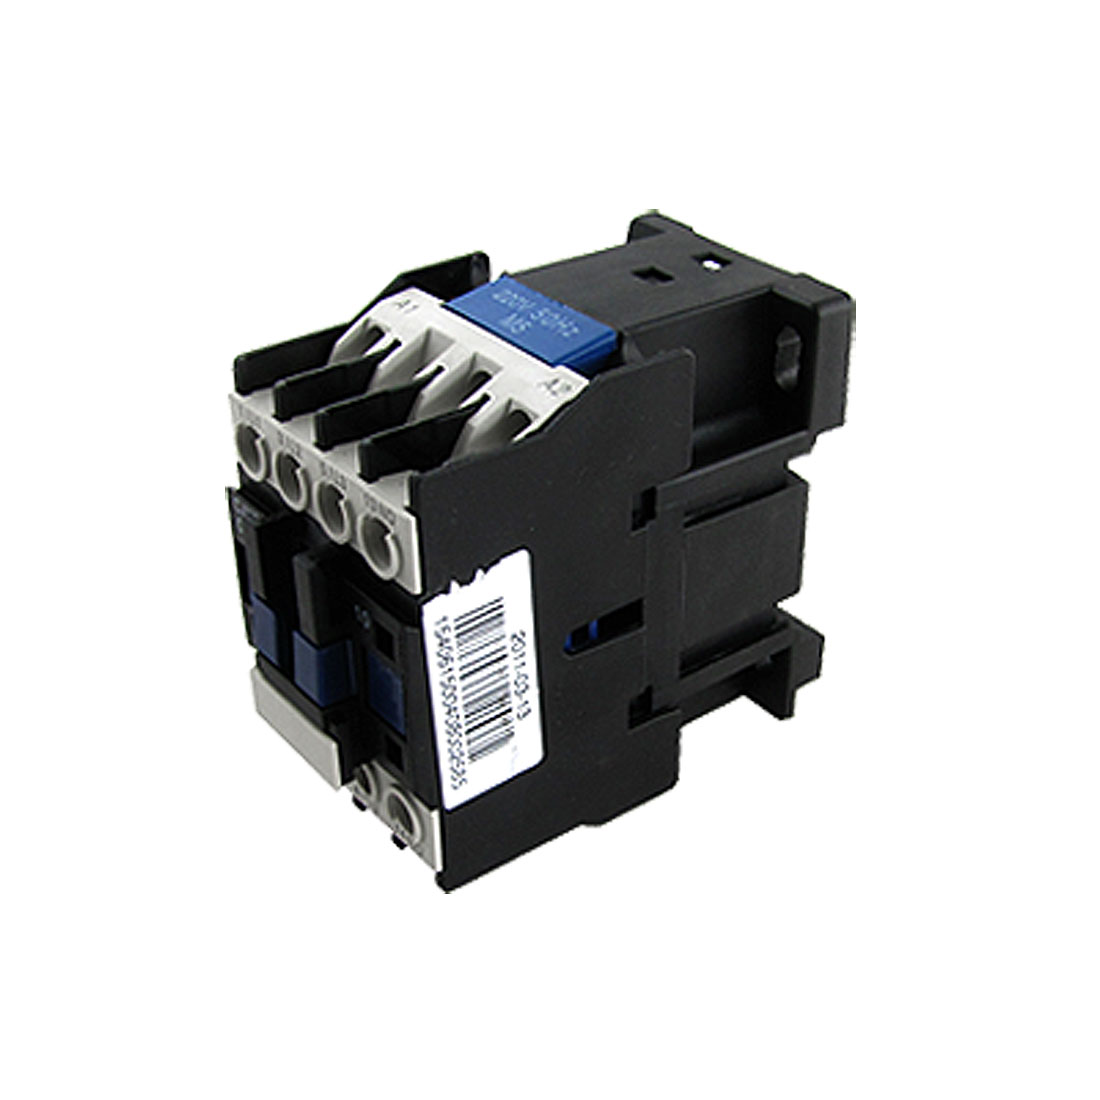 CJX2-1810 Motor Control AC Contactor 18A 3 Phase 3-Pole Coil 220 Volts